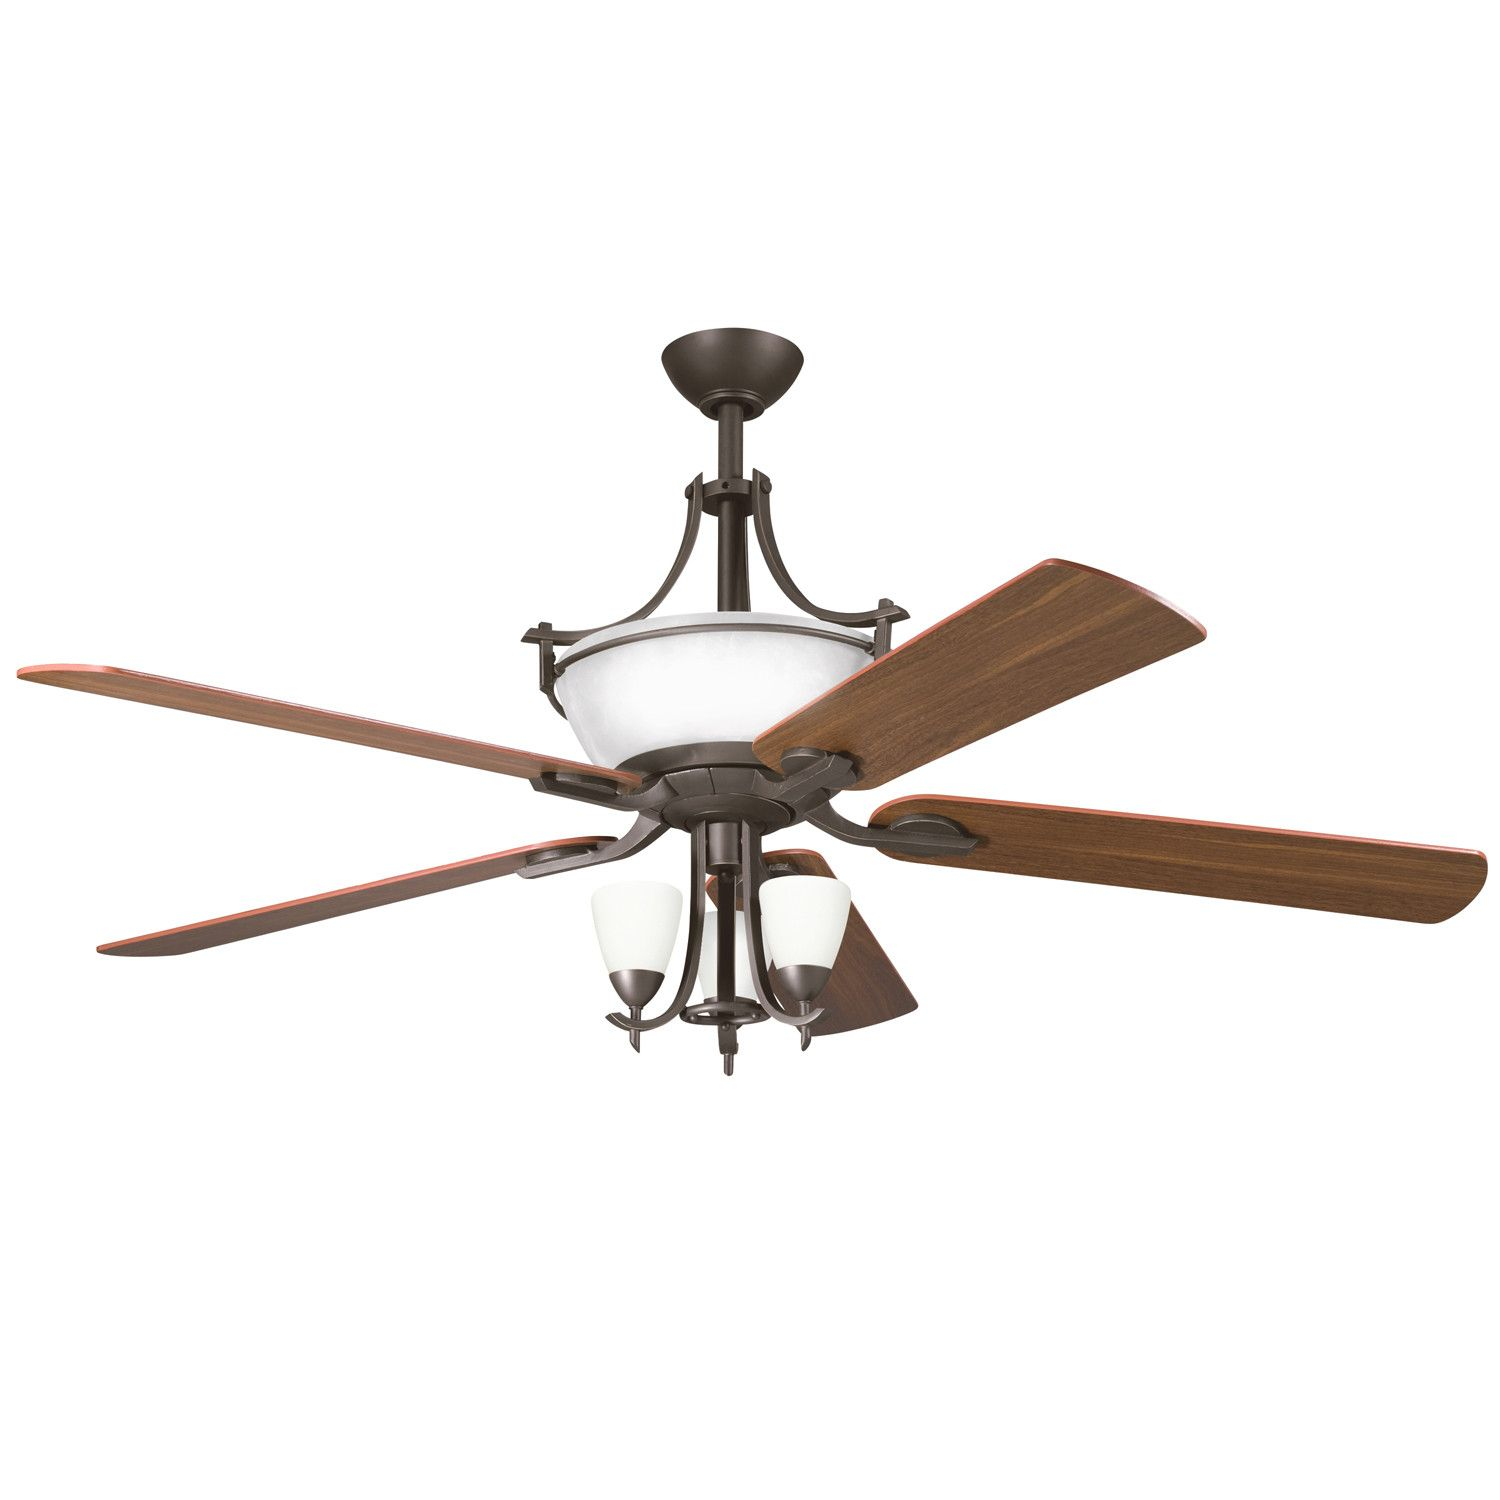 "Kichler Olympia 6 Light 60"" Ceiling Fan in Olde Bronze Finish"